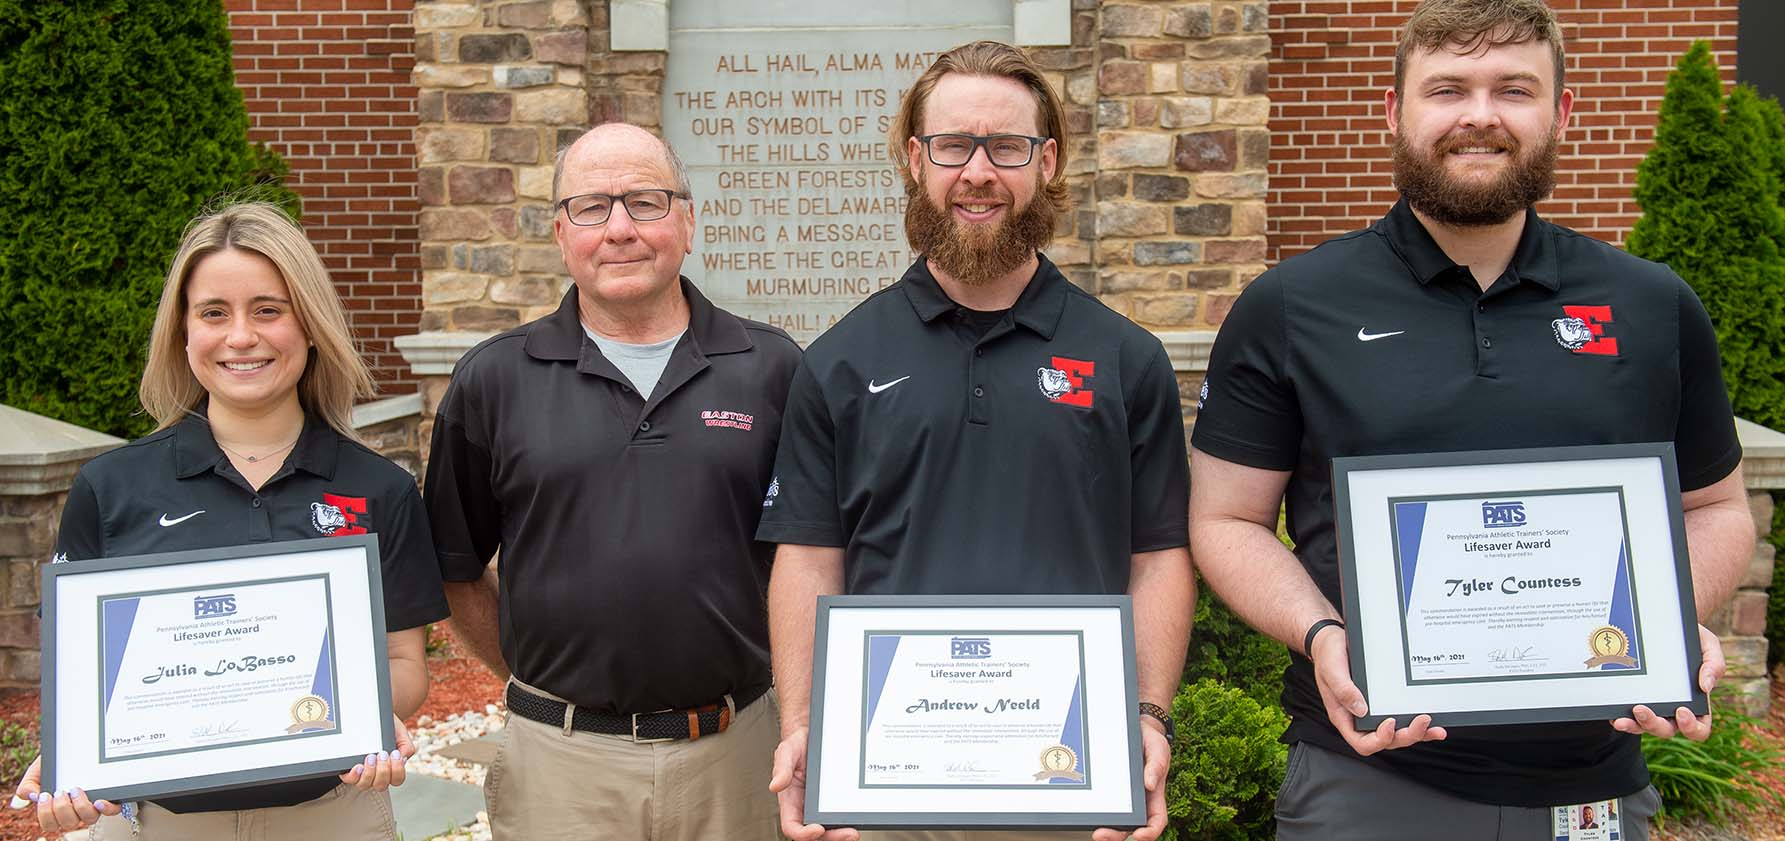 Easton High School's wrestling coach Steve Powell with the athletic trainers who saved his life (left to right): Julia LoBasso, Andrew Neeld, and Tyler Countess '12 G'16..